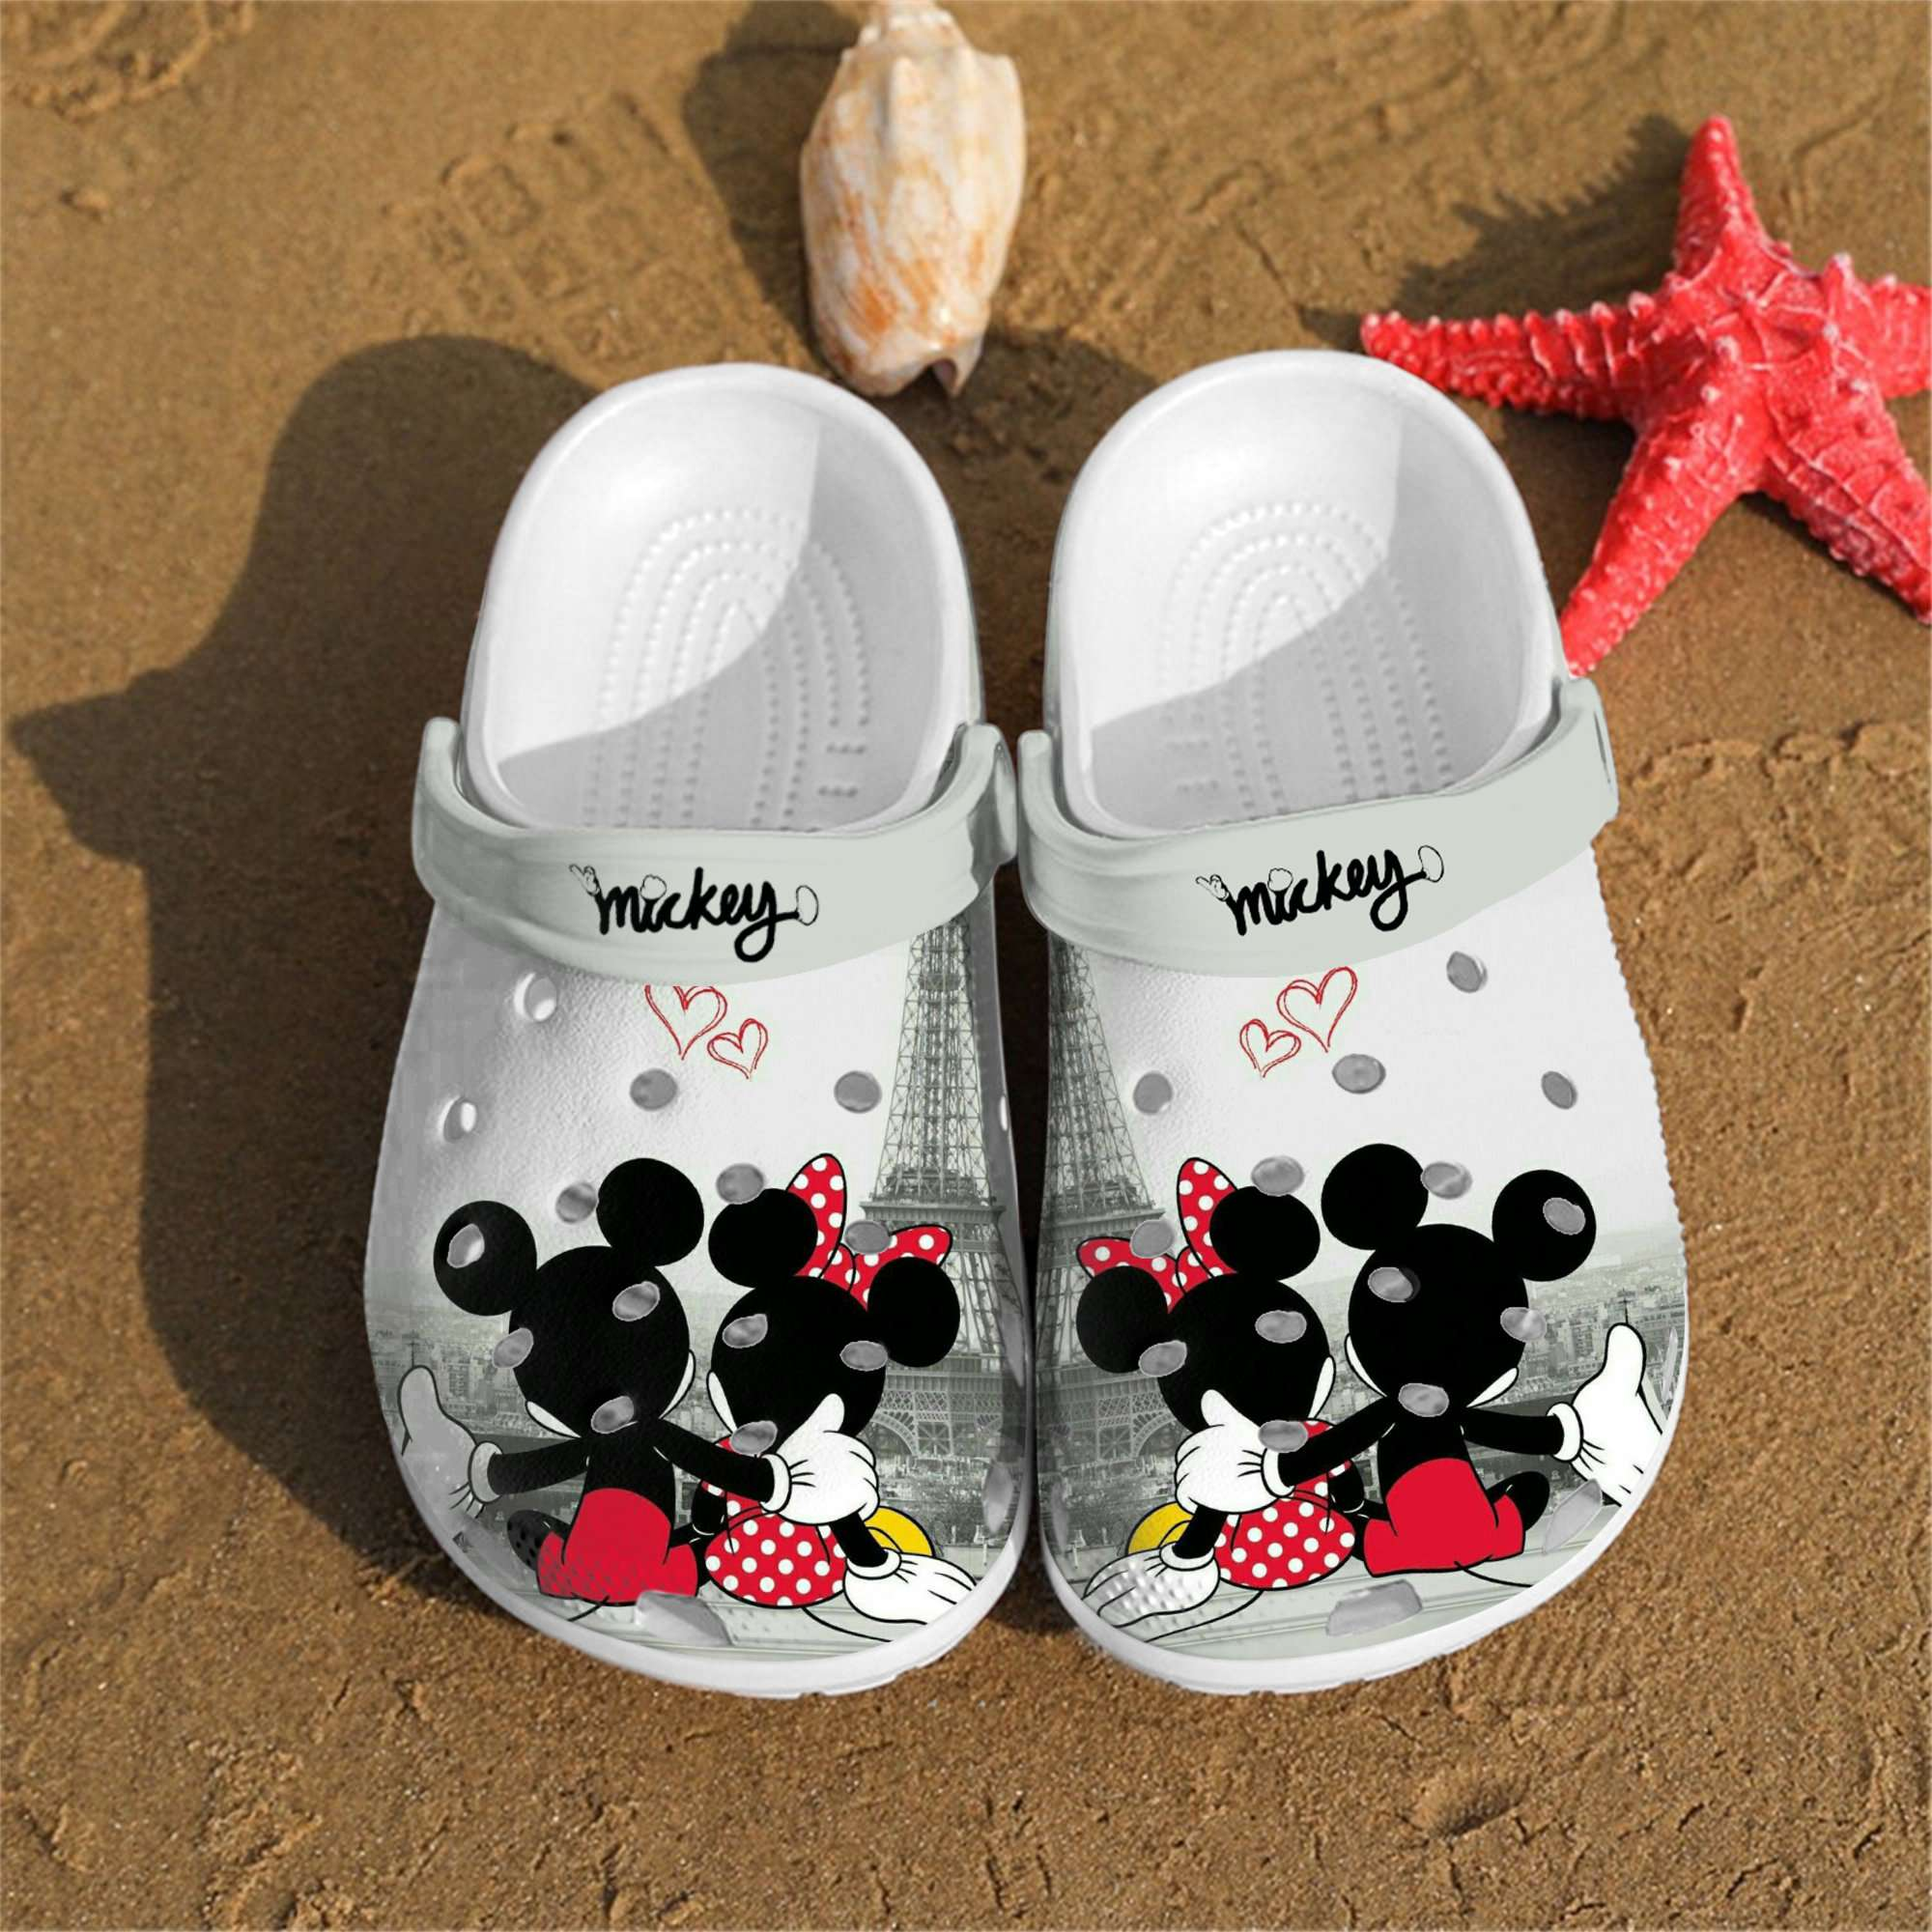 Personalized Mickey Crocs Clog Shoes